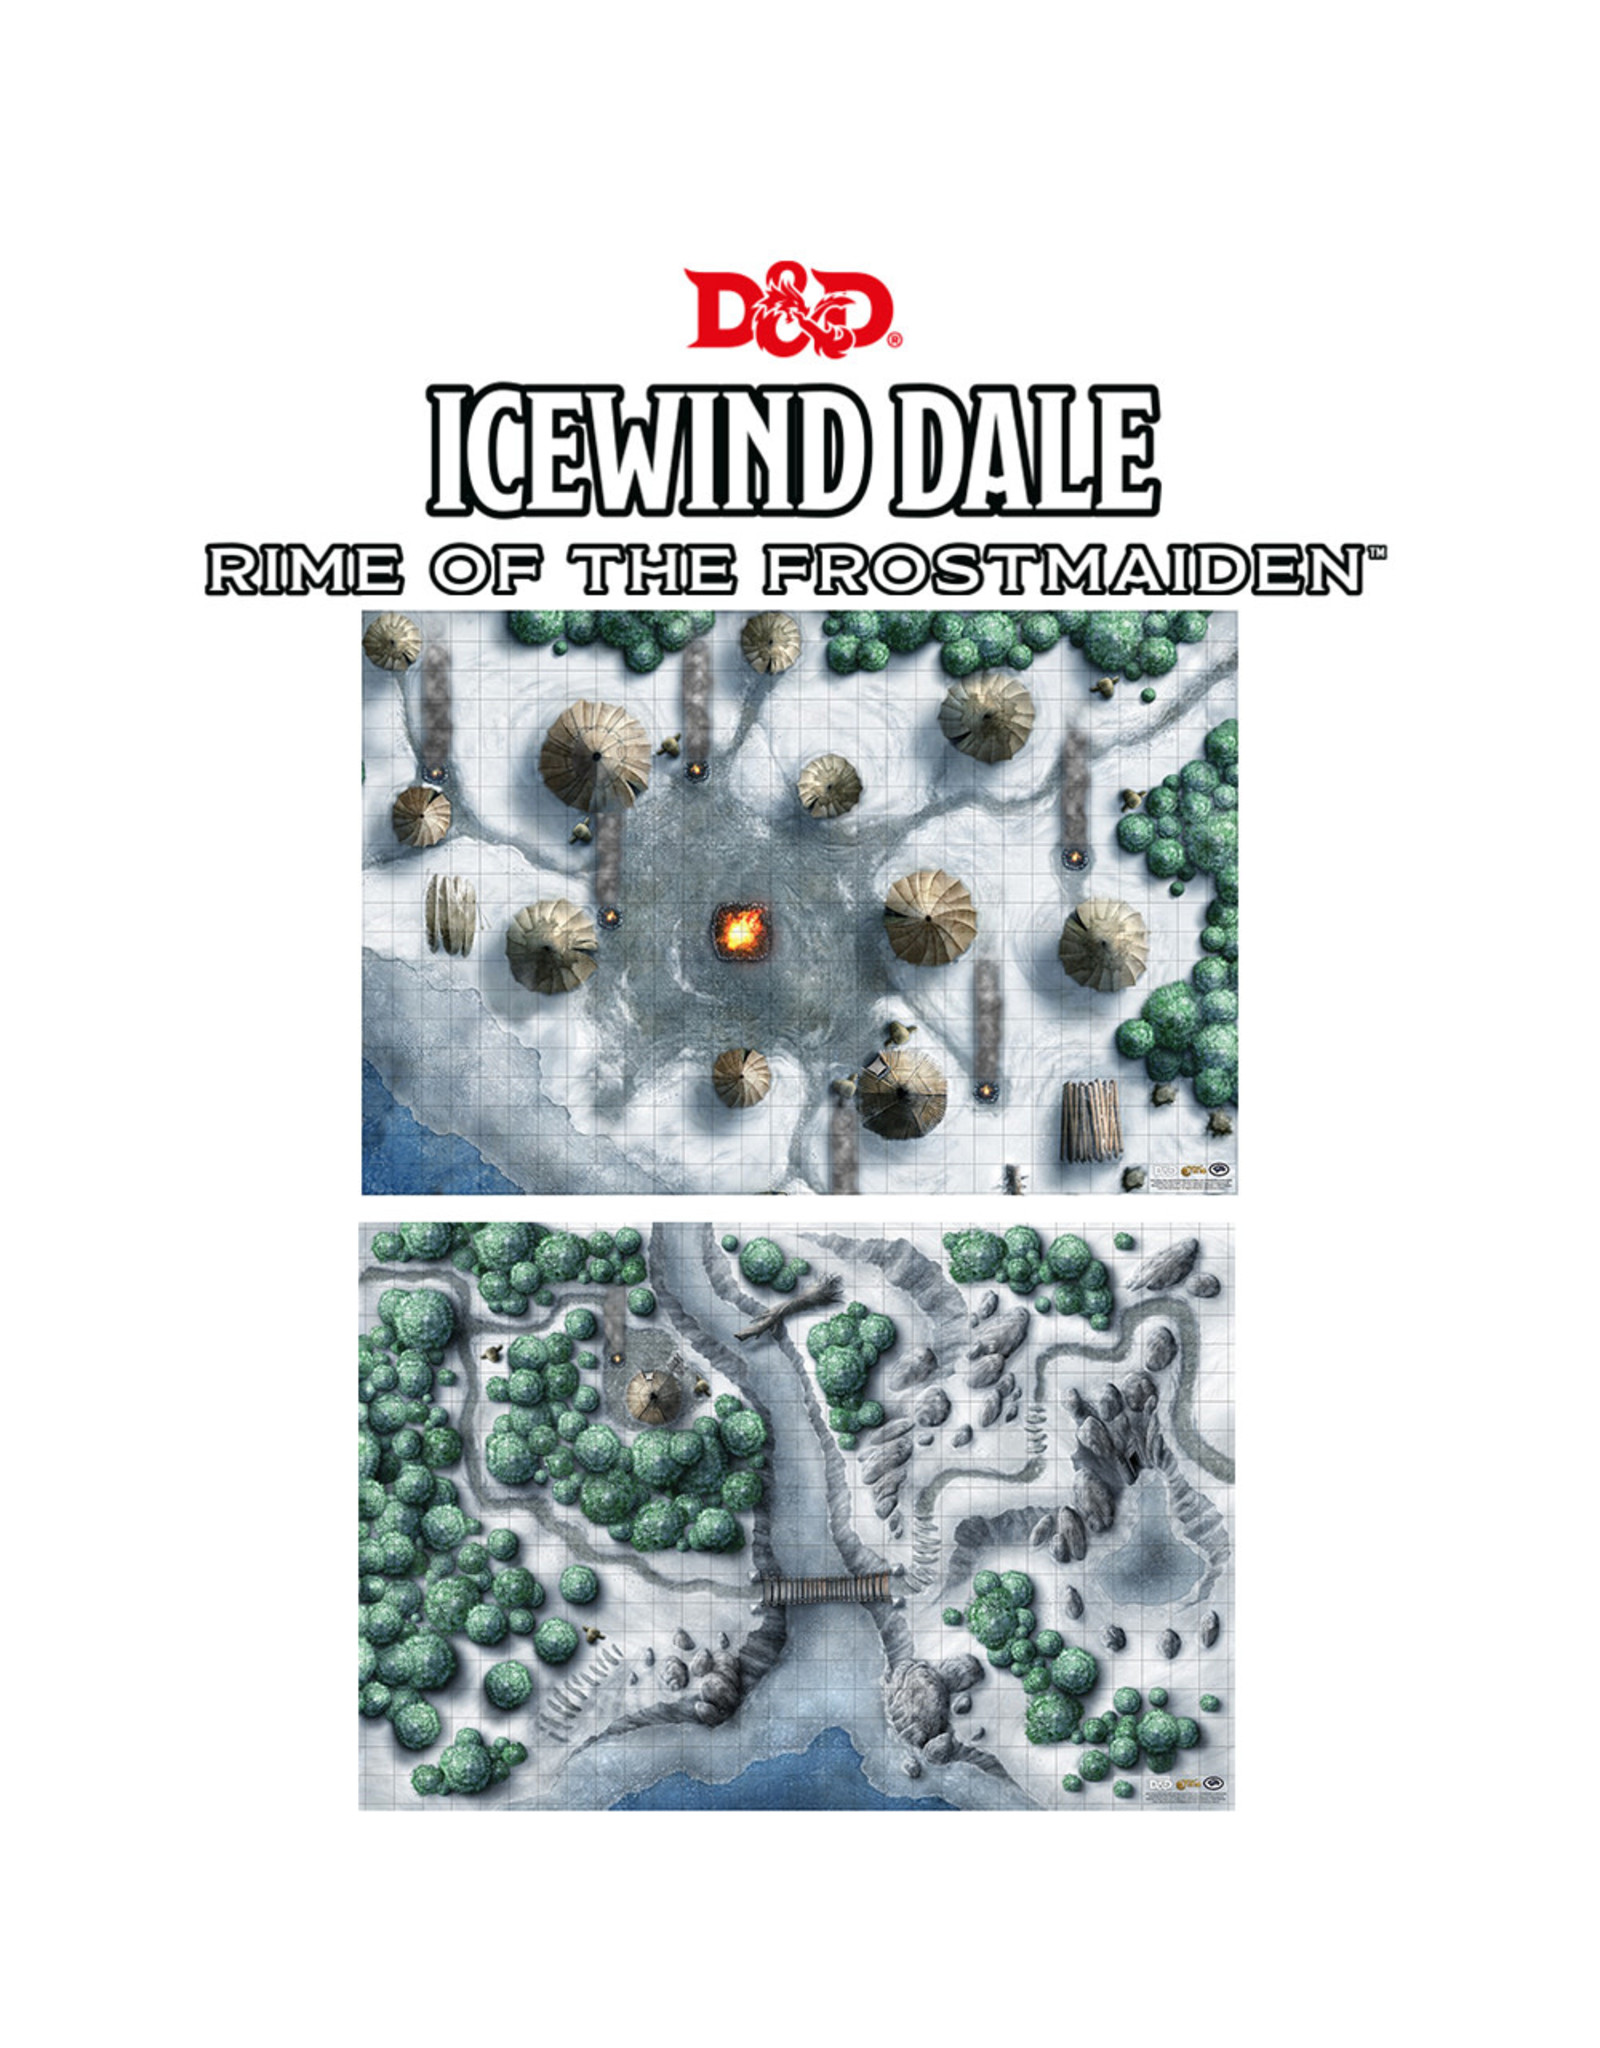 GaleForce Nine D&D 5th Edition: Icewind Dale Encounter Map Set